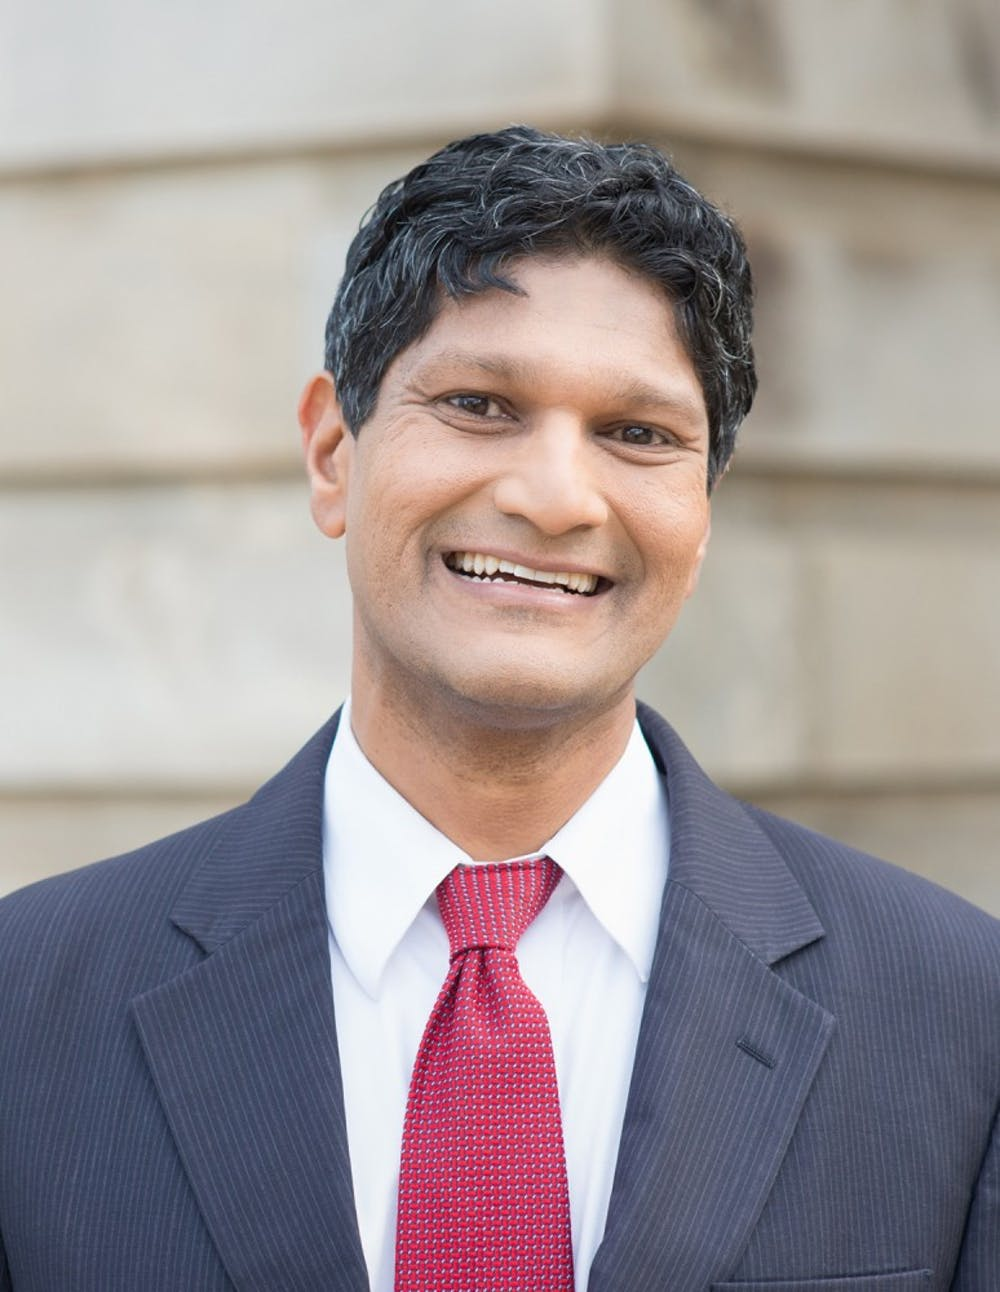 Q&A with Jay Chaudhuri, the first Indian-American state legislator in N.C.